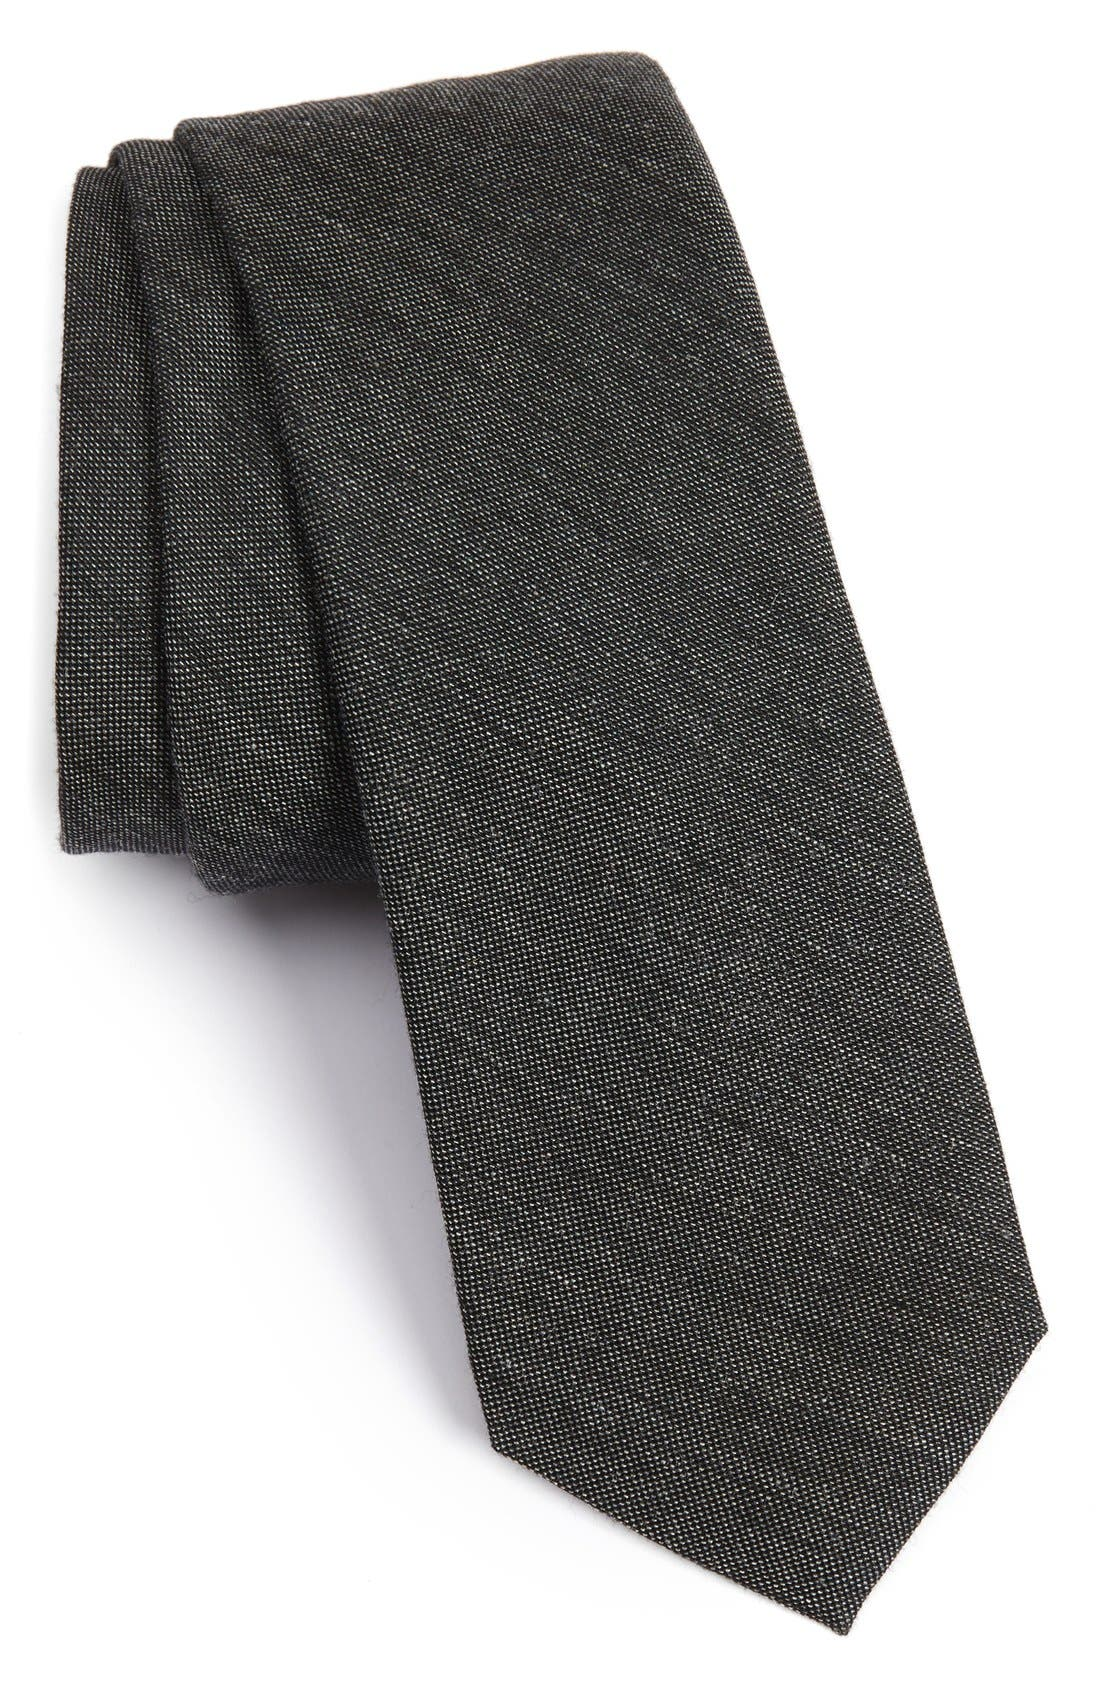 Alternate Image 1 Selected - Calibrate Mélange Woven Skinny Tie